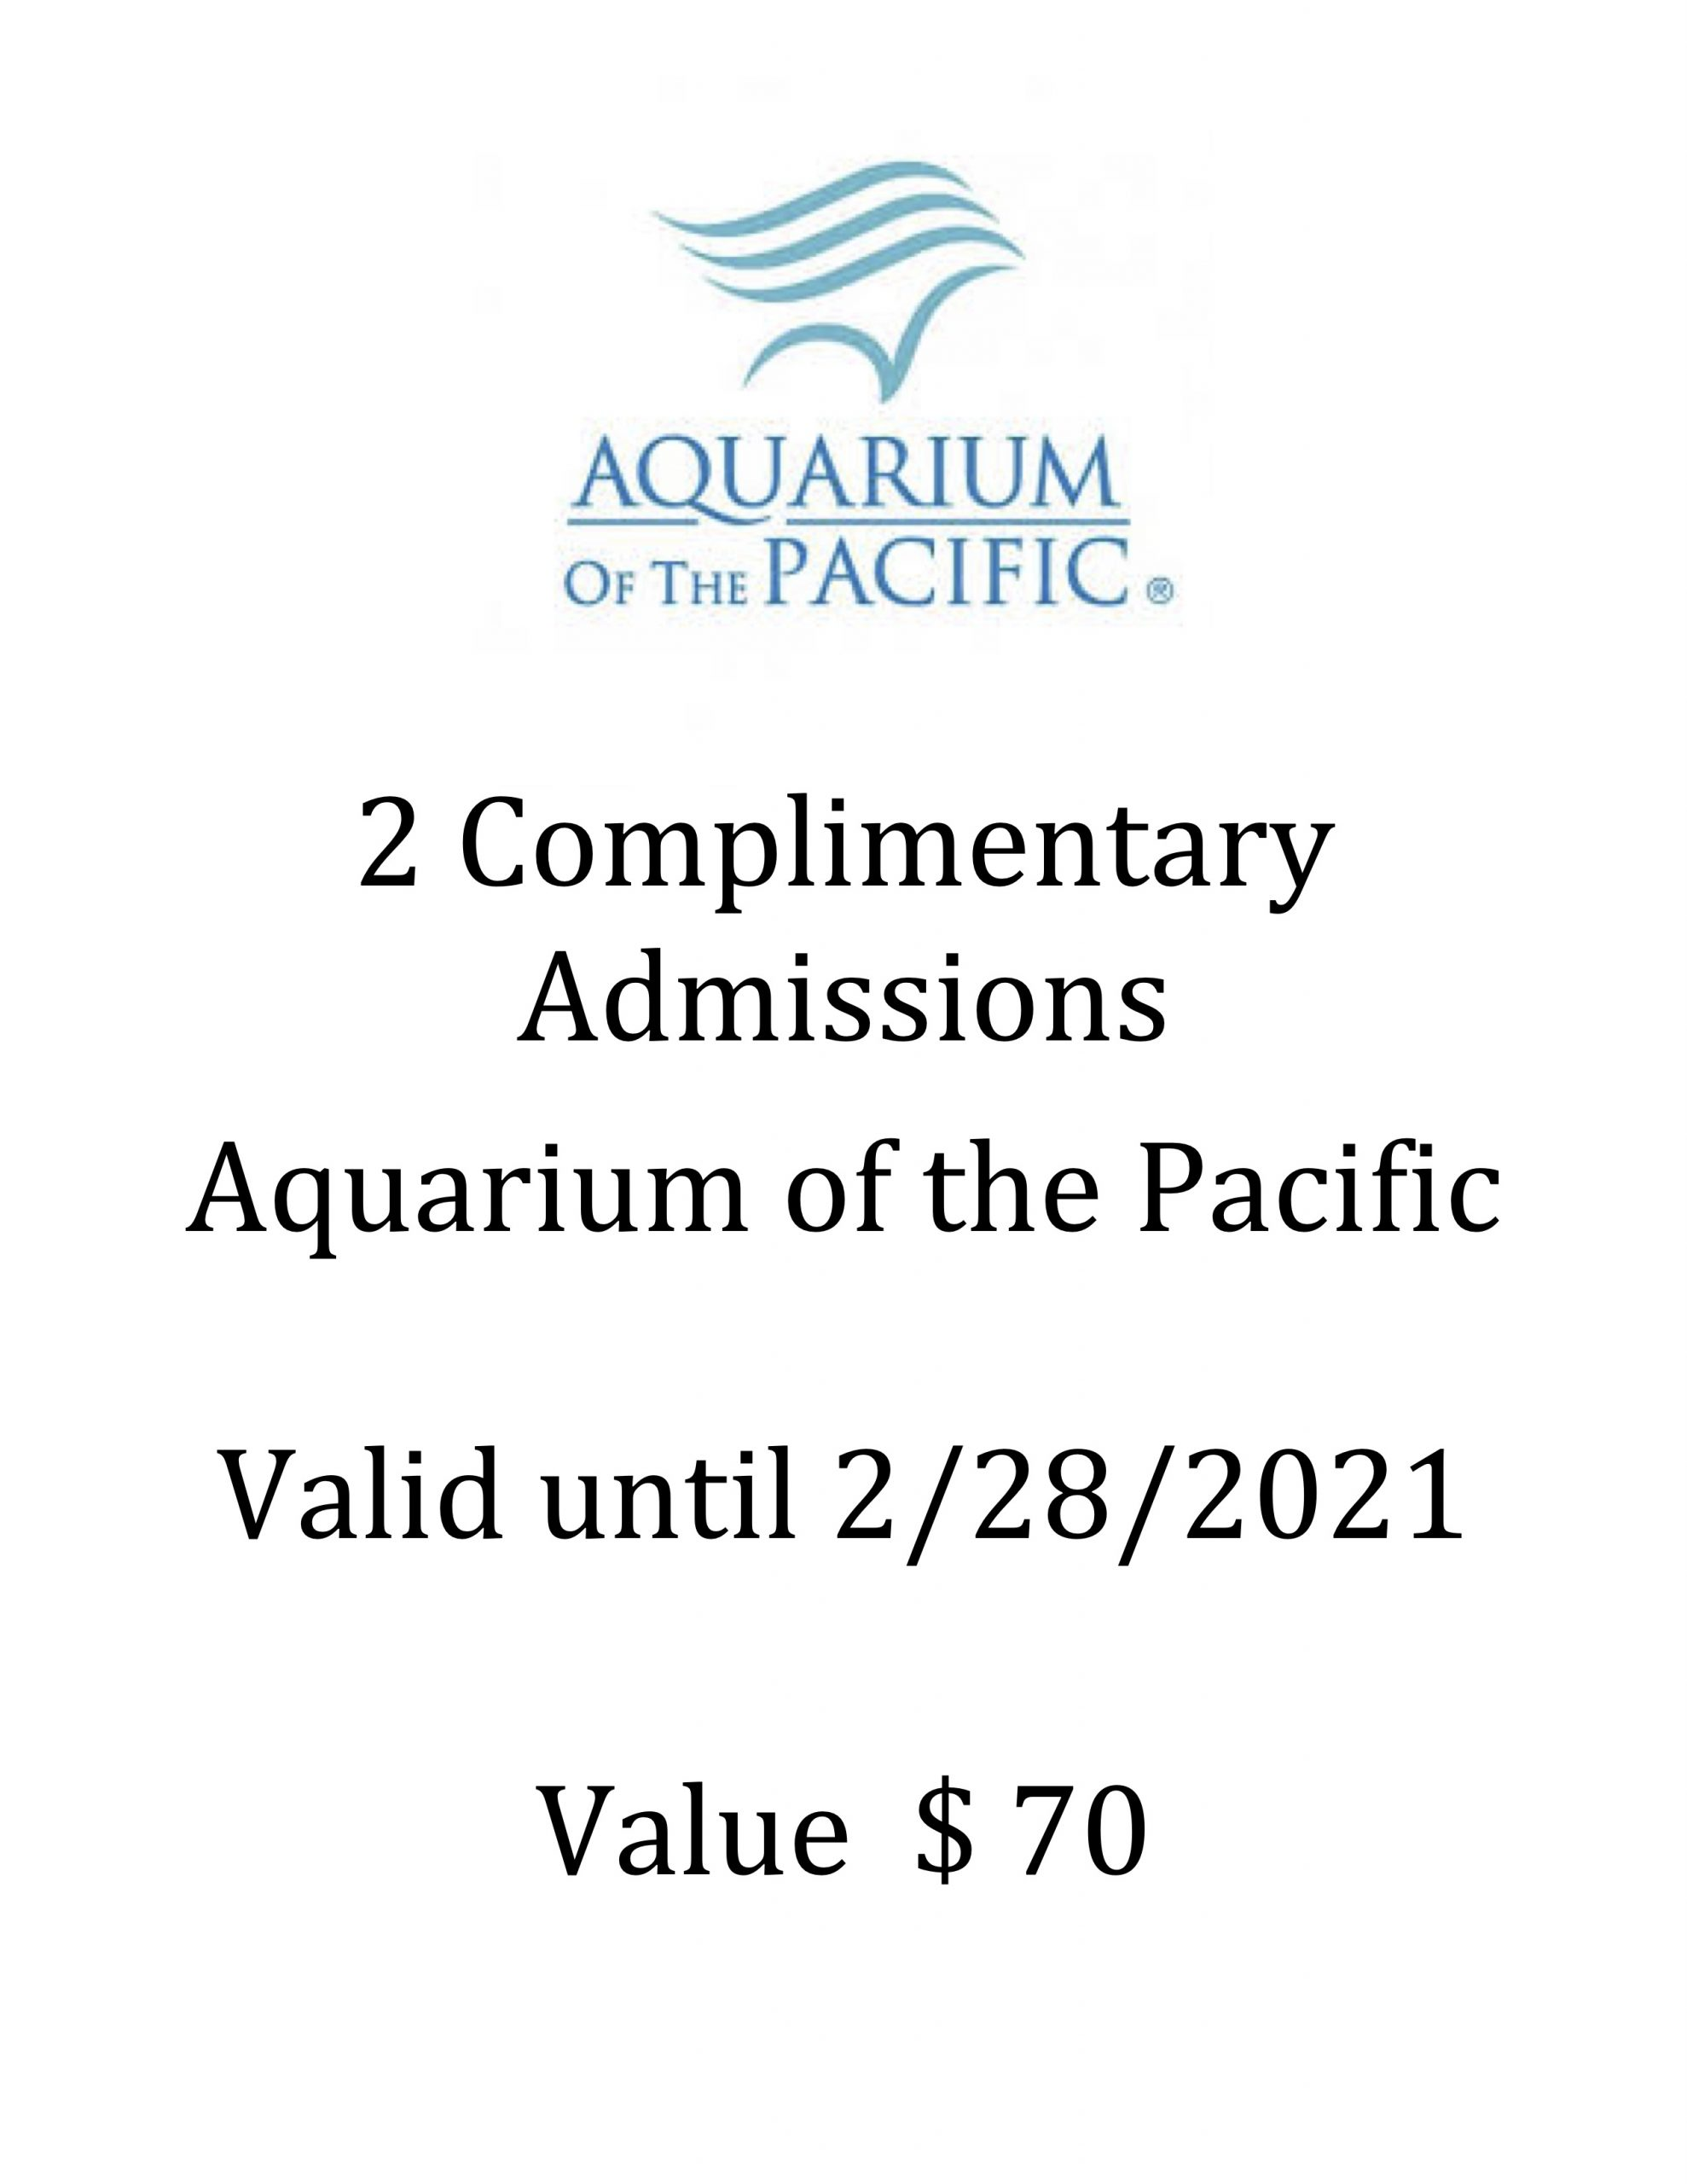 #1789  Aquarium of the Pacific - Value $70